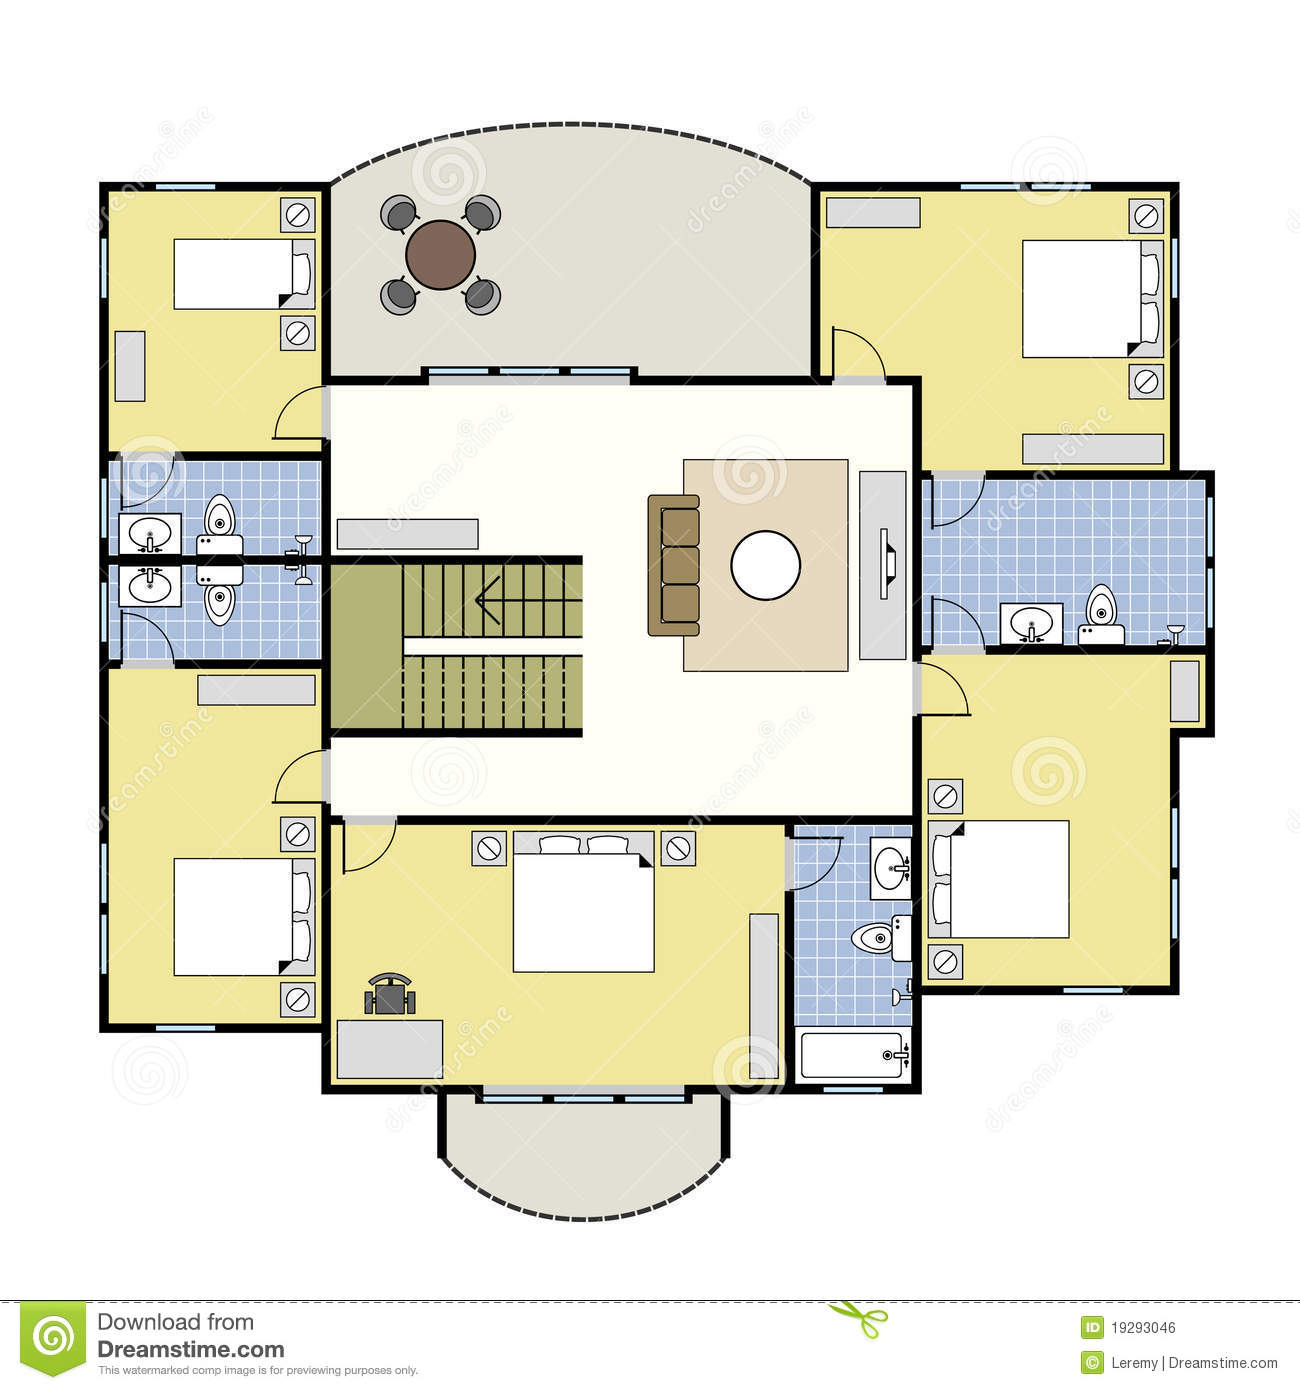 Floorplan Architektur Plan Haus Lizenzfreies Stockbild